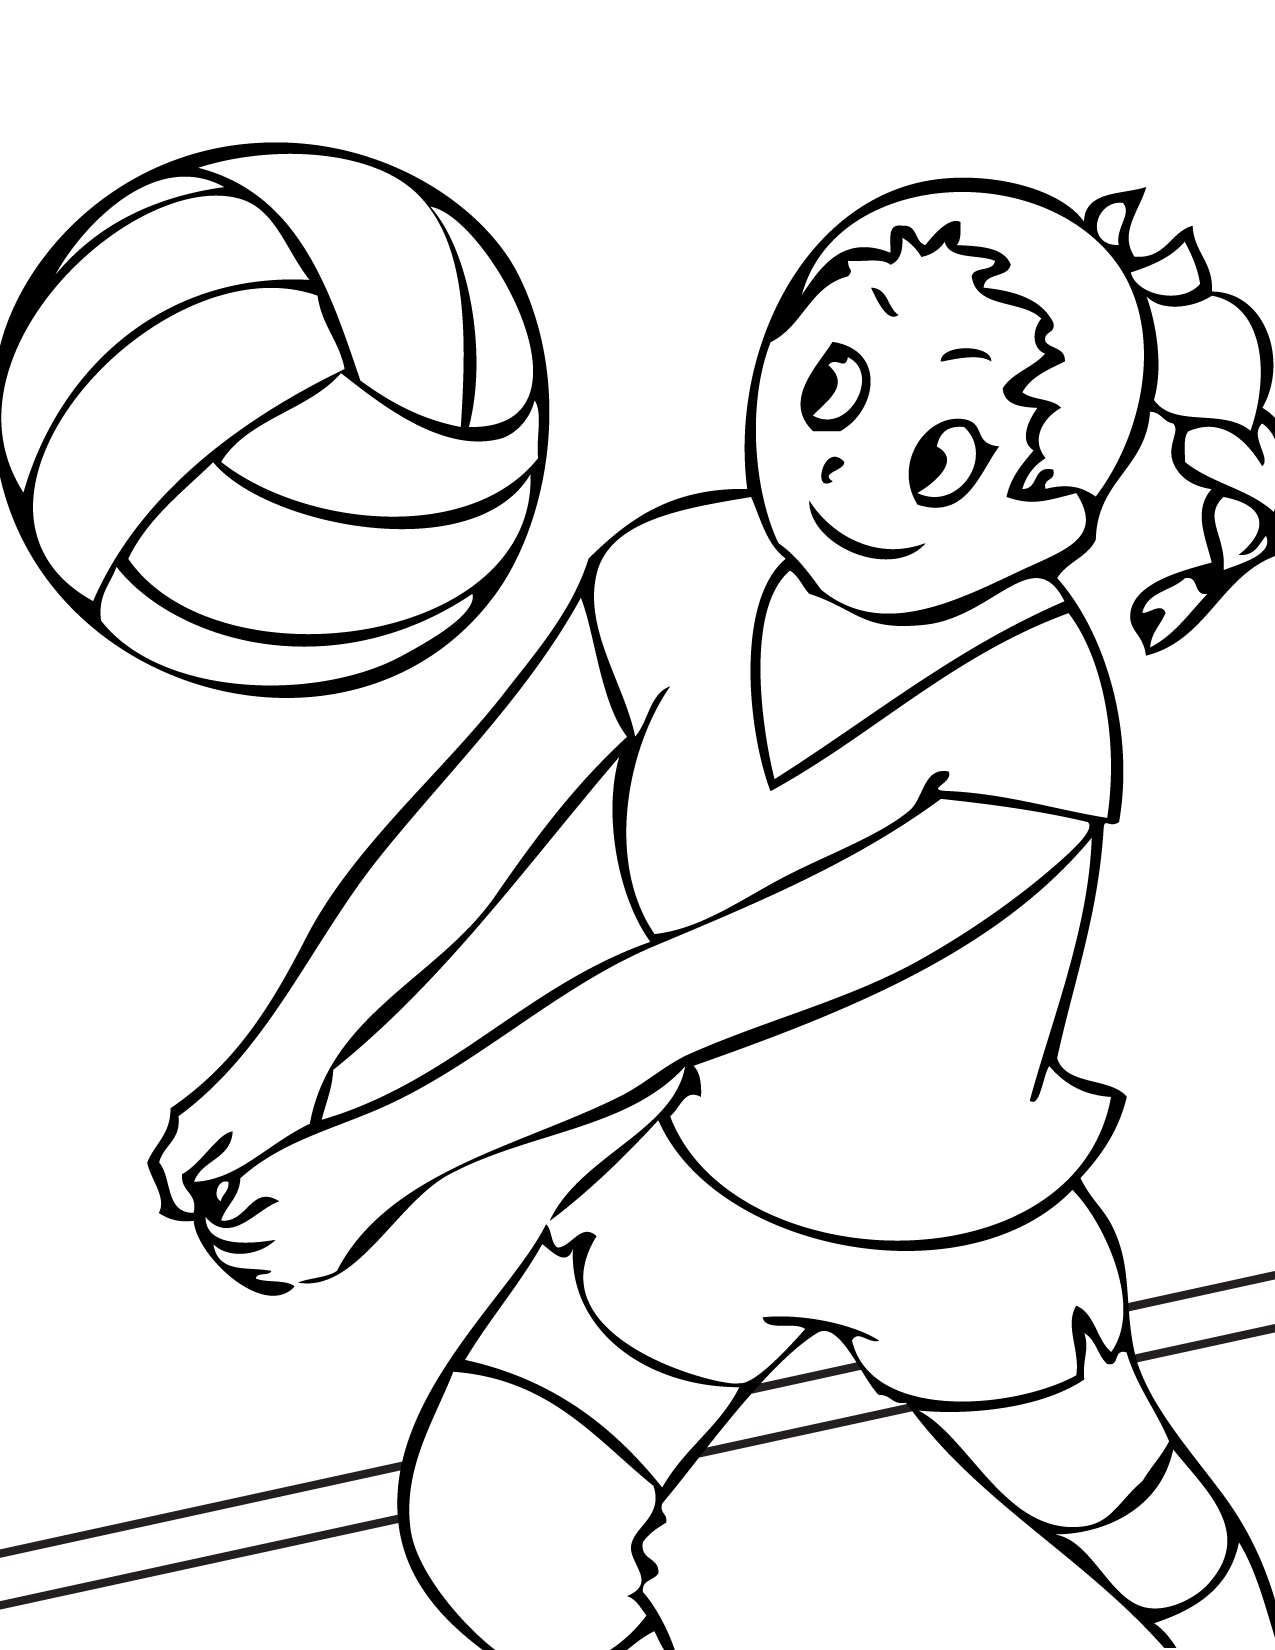 free printable volleyball coloring pages for kids